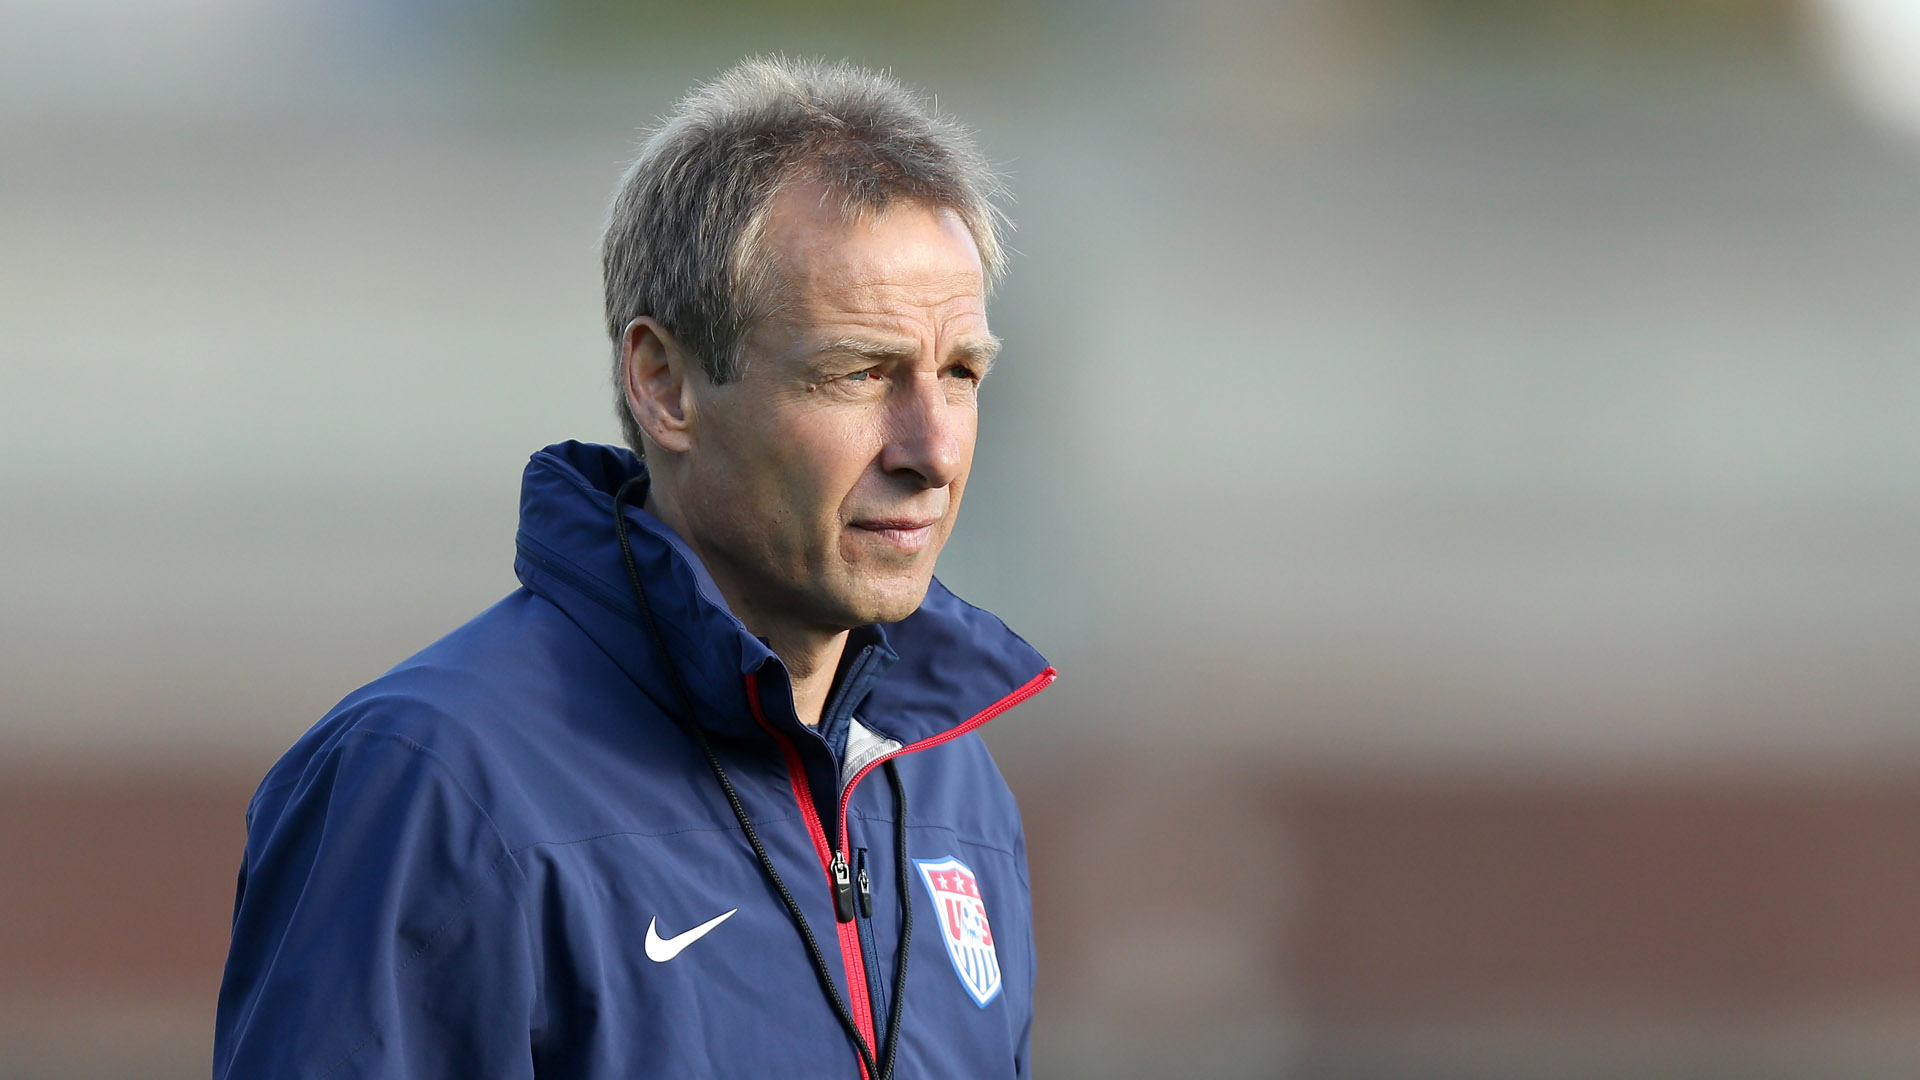 Republic of Ireland vs. USA betting preview and pick – O'Neill's men ready to get back to winning ways